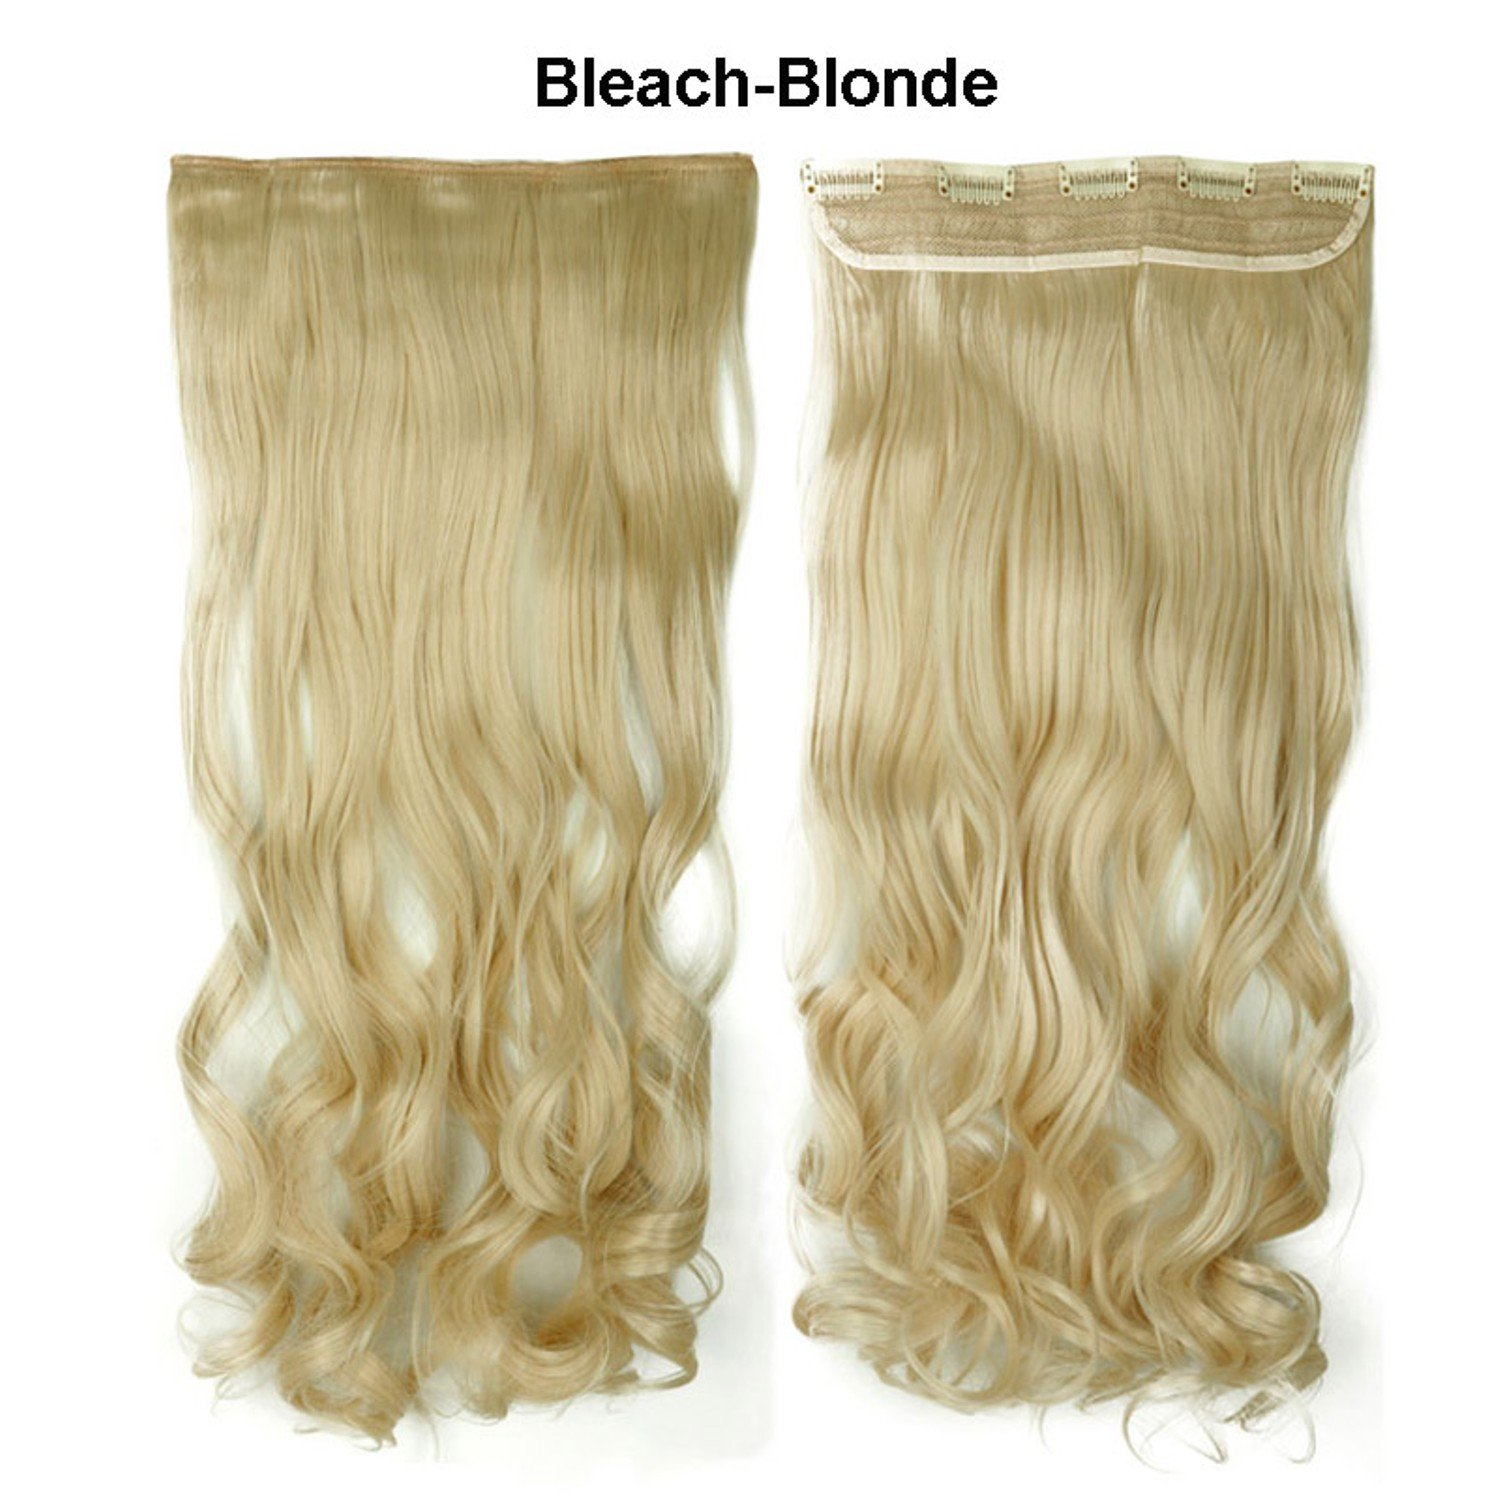 28 Inch Fine Quality Beach Blond Long Curly Synthetic Real As Human